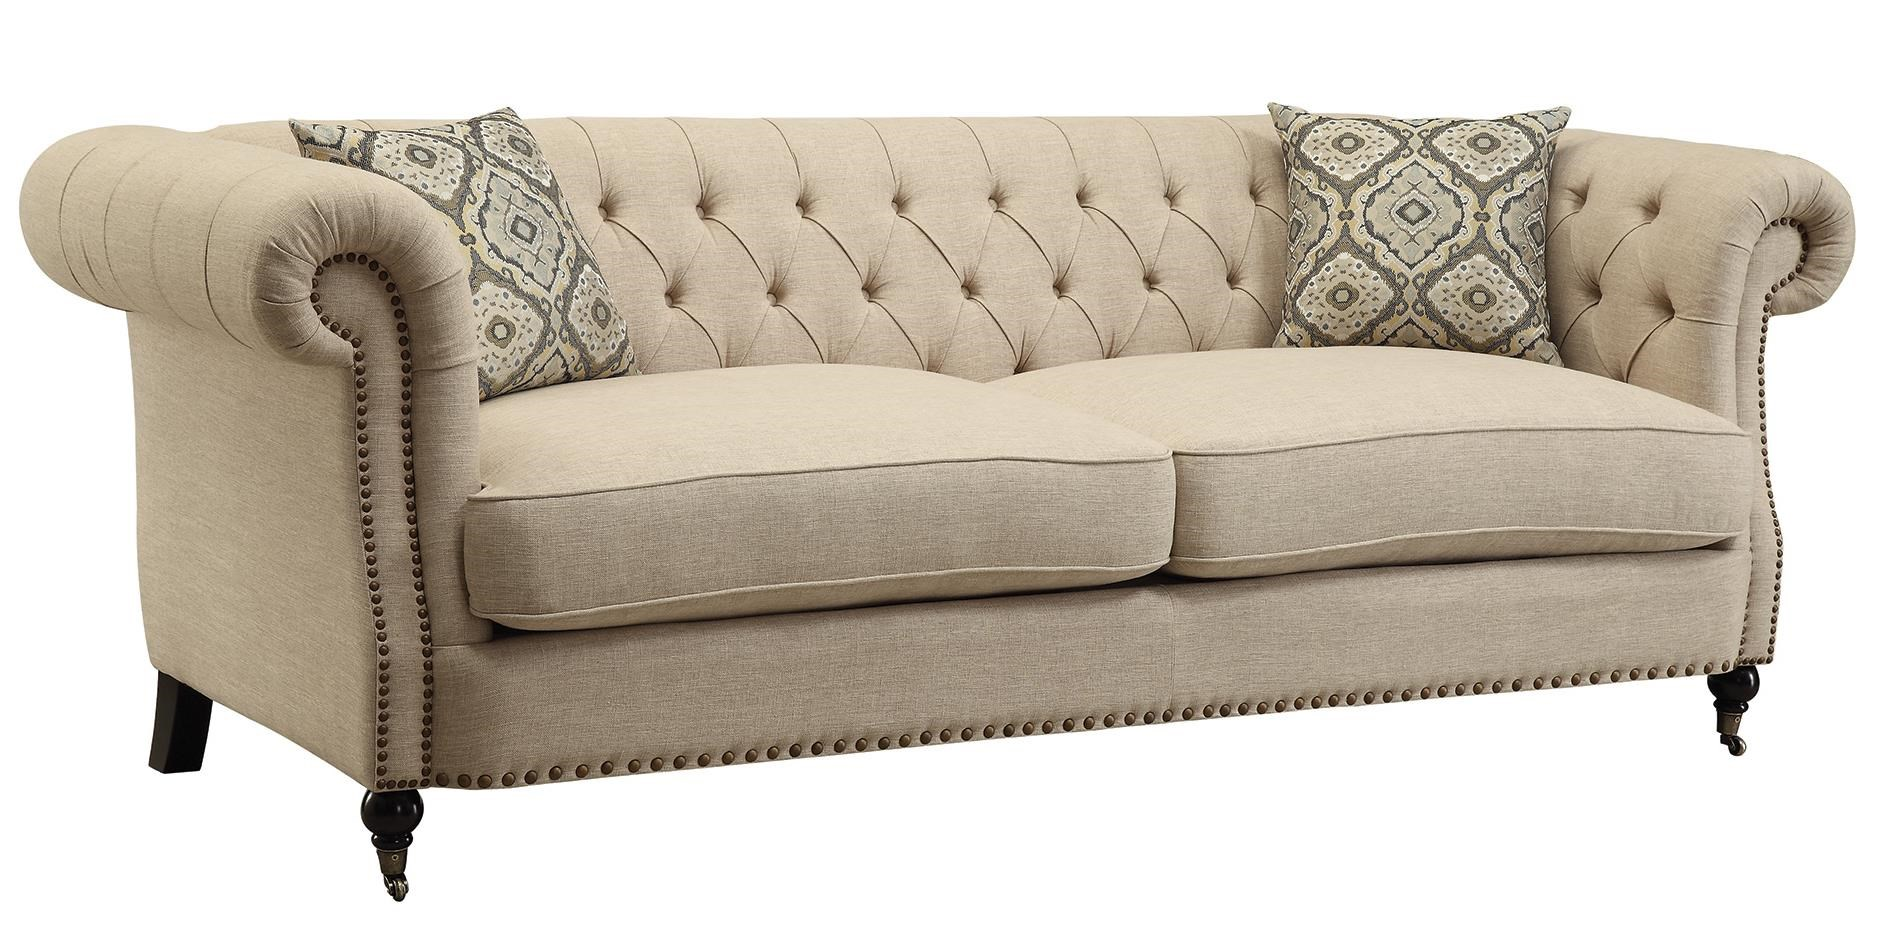 Coaster Trivellato Traditional Button Tufted Sofa With Large Rolled Arms  And Nailheads   Coaster Fine Furniture